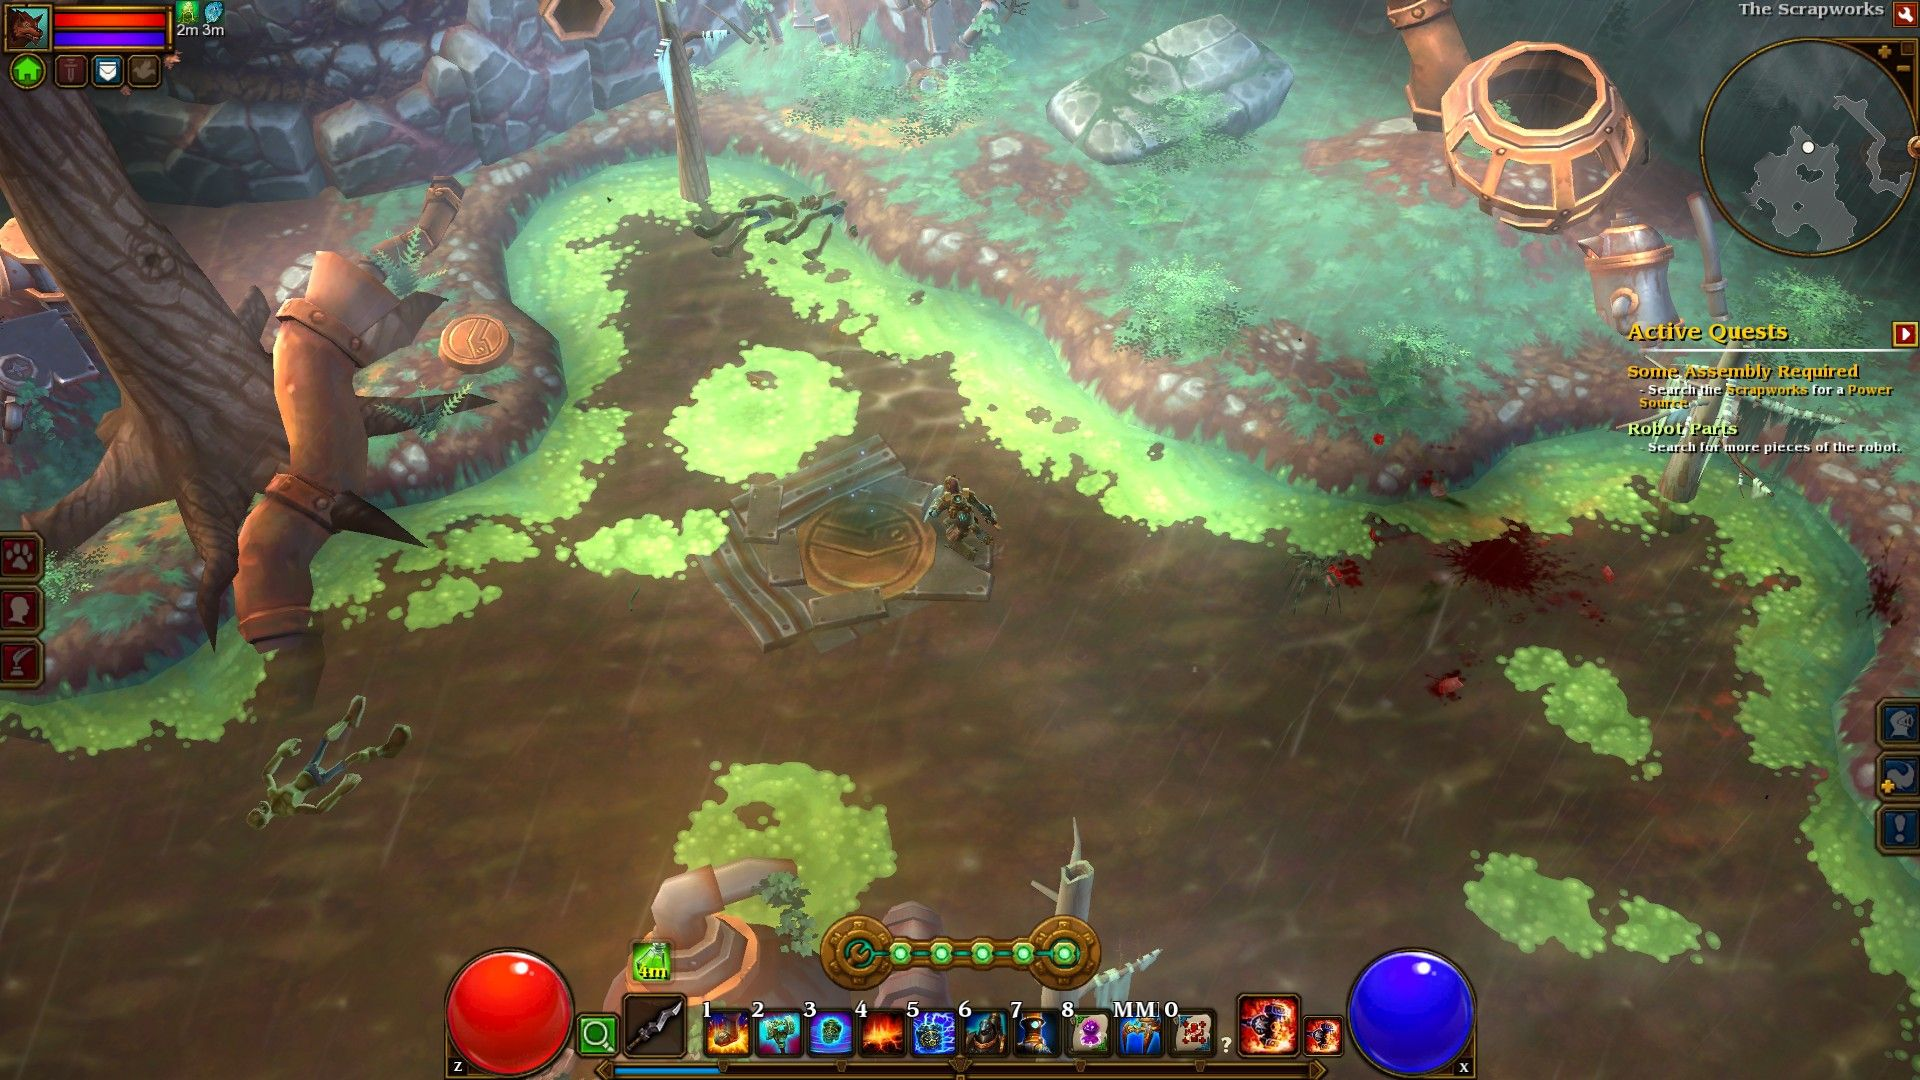 torchlight 2 screenshots image 10093 new game network. Black Bedroom Furniture Sets. Home Design Ideas